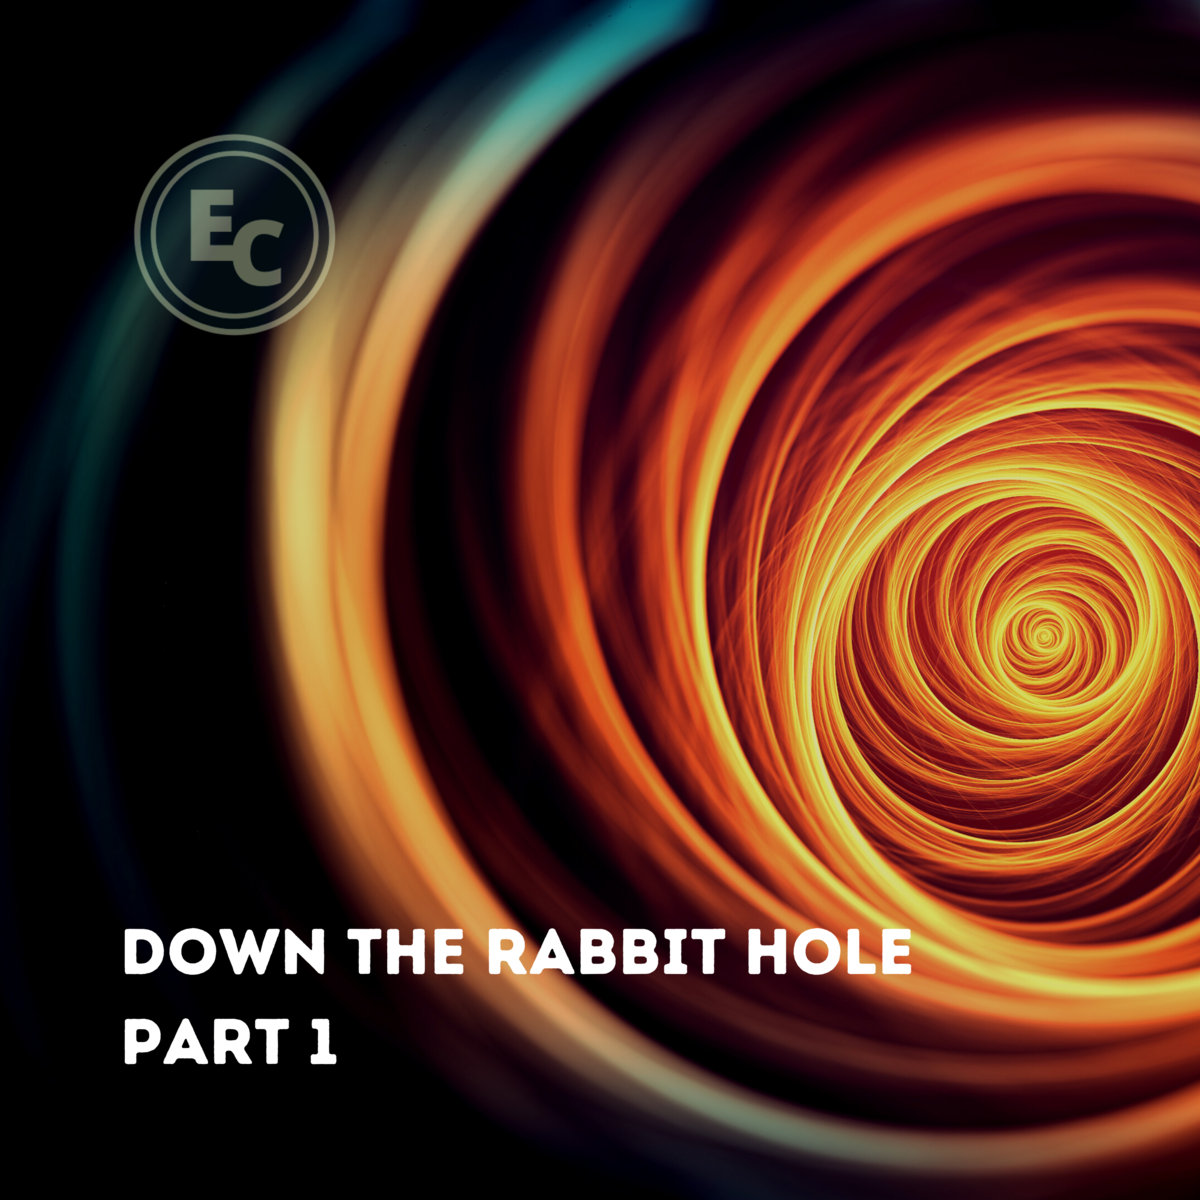 Down the Rabbit Hole Pt.1 by Enigmatic Clergy